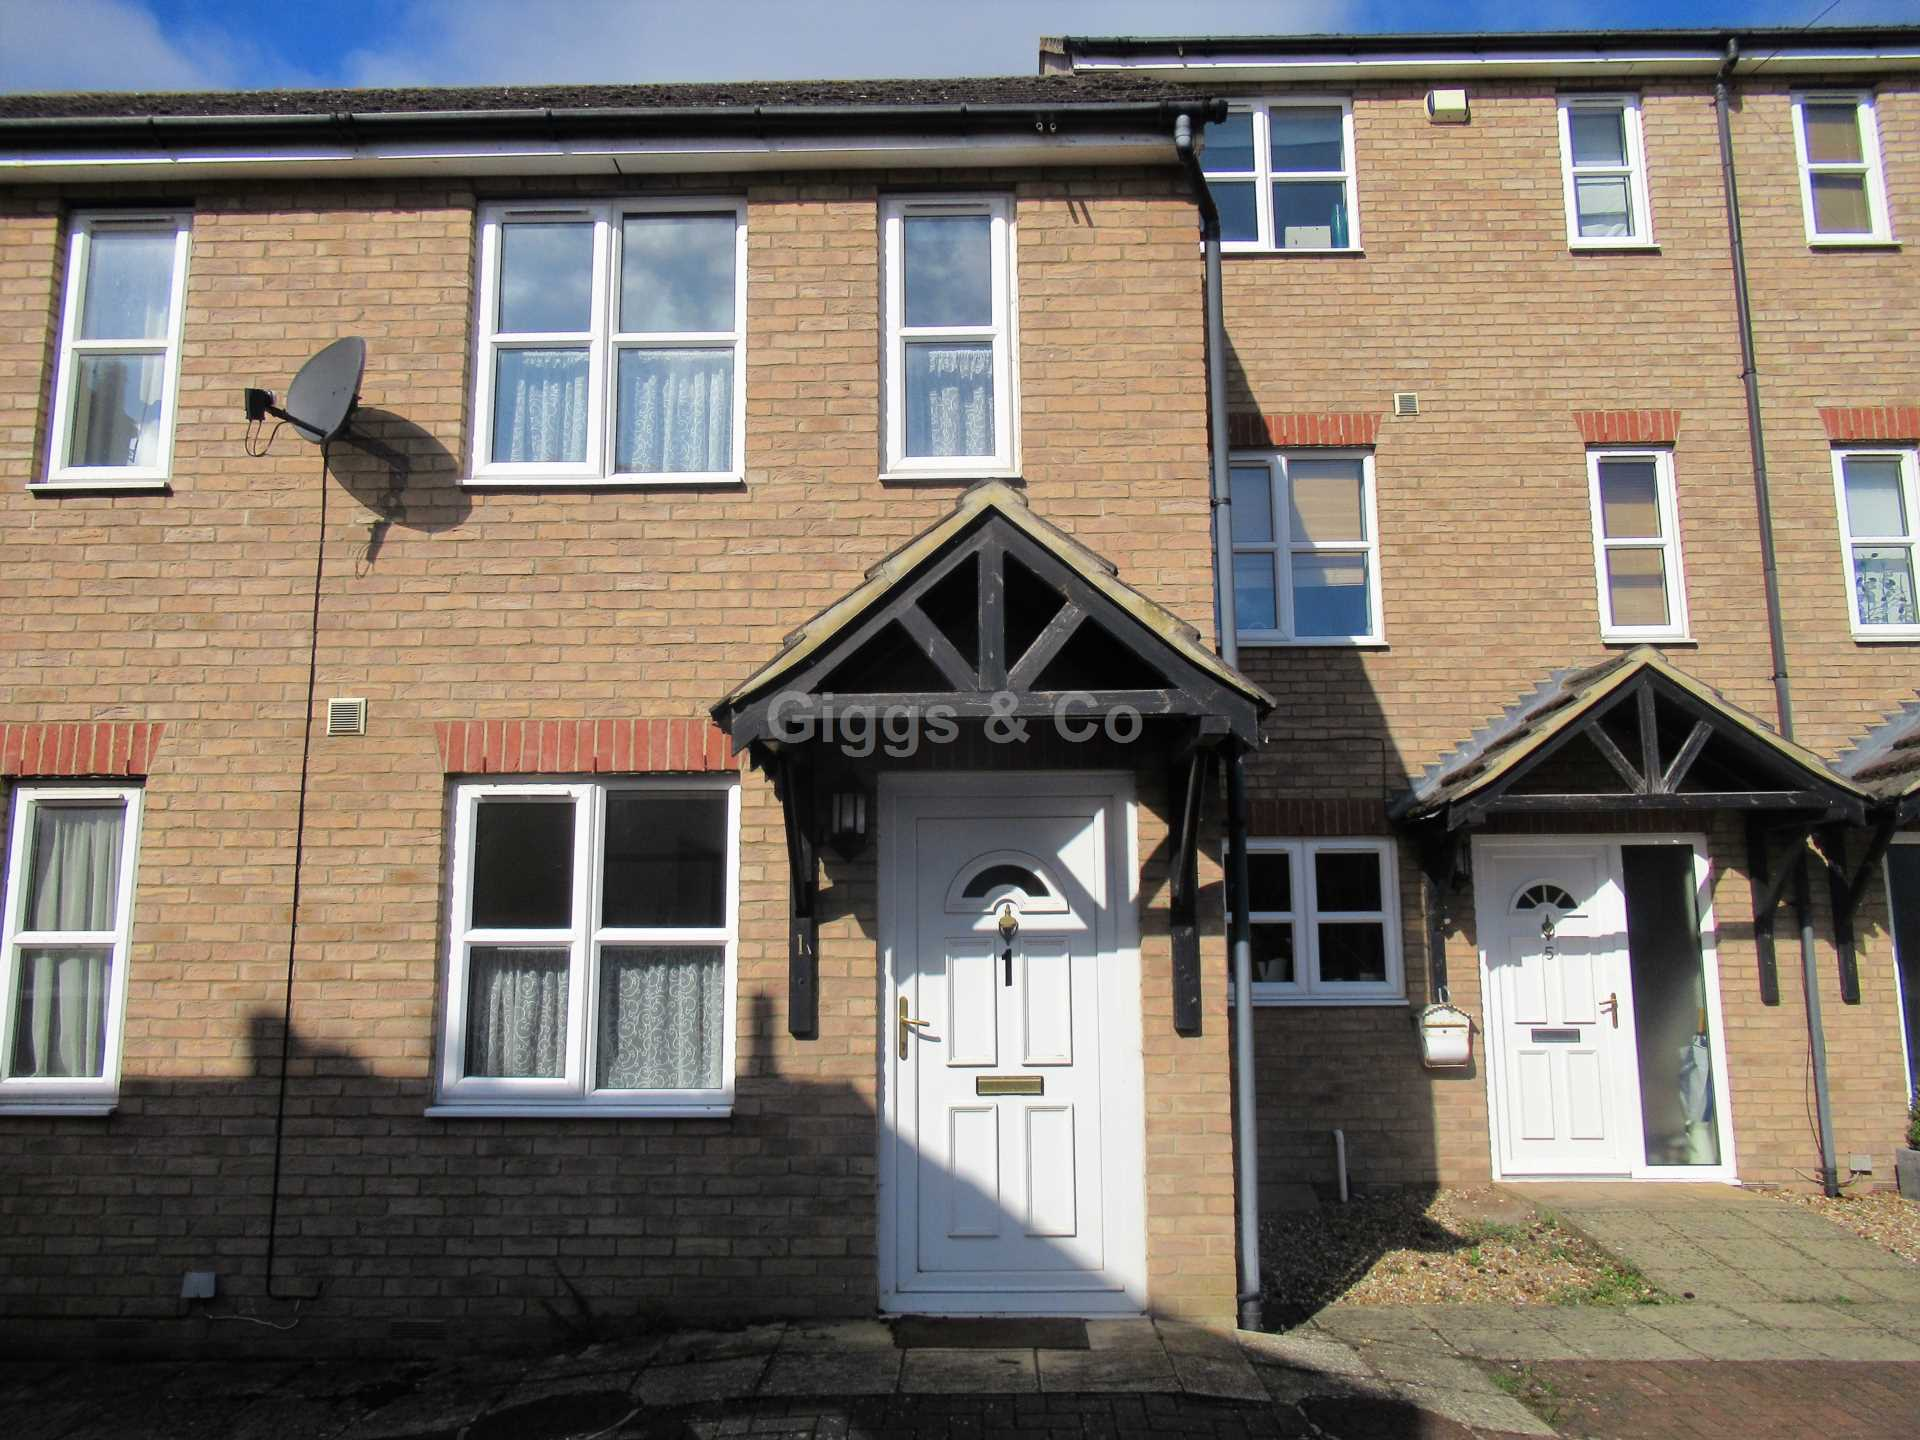 1 bed house to rent in Priory Road, St. Neots, PE19